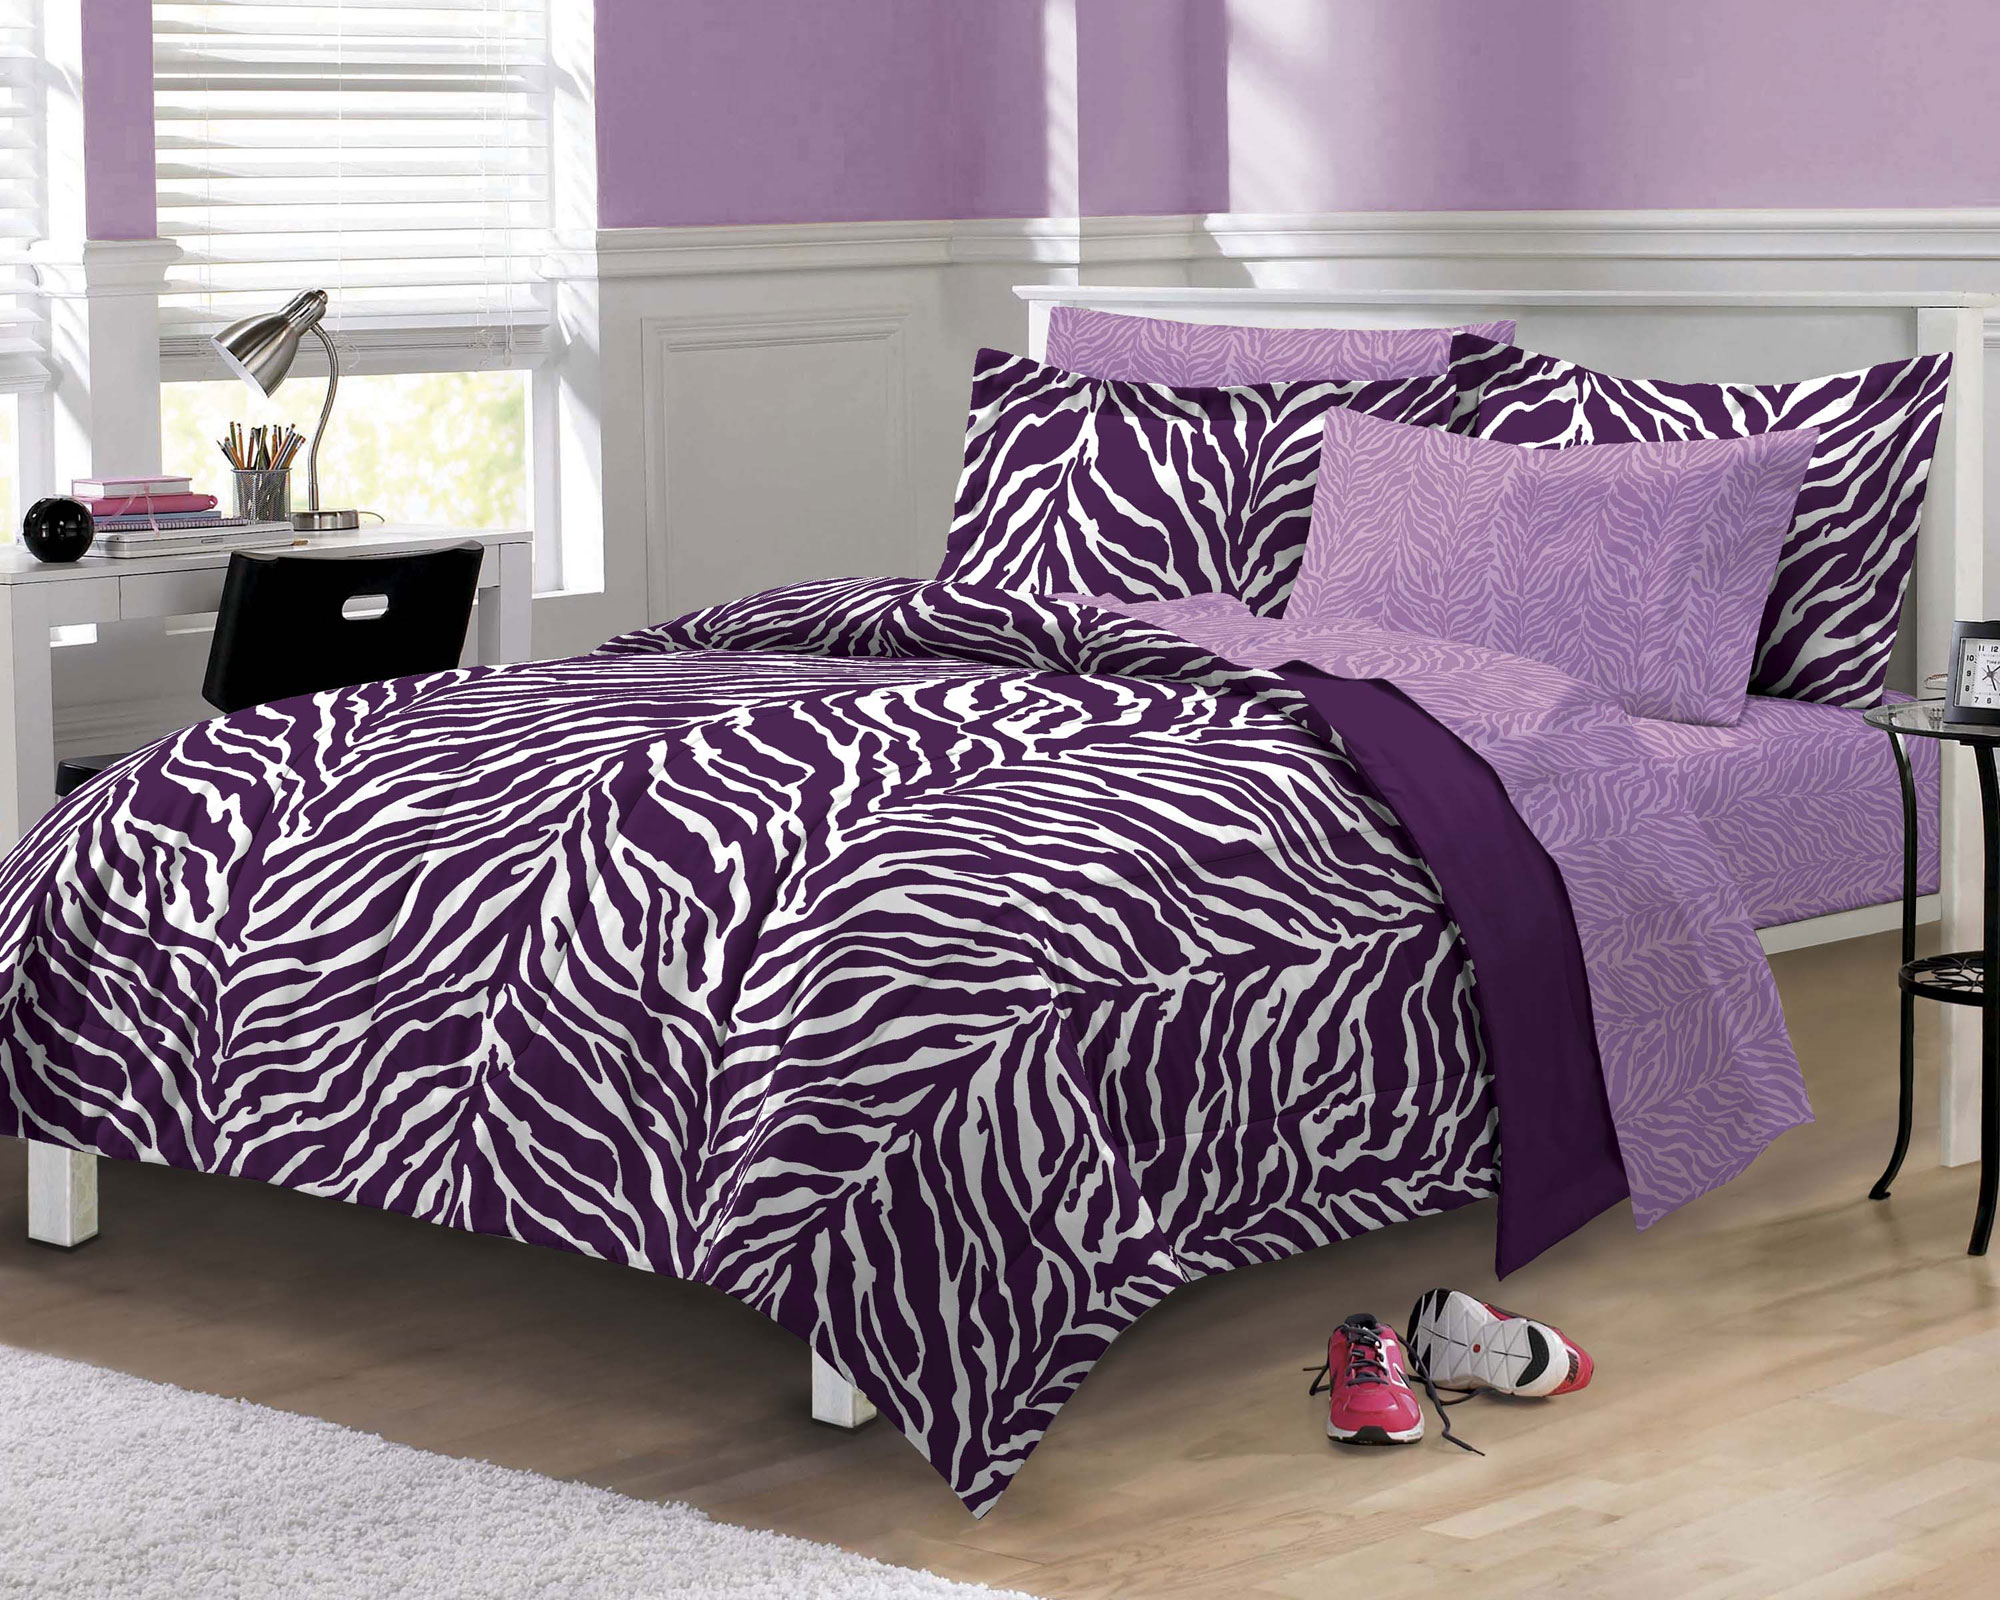 Purple zebra stripe bedding set animal print comforter Zebra print bedding